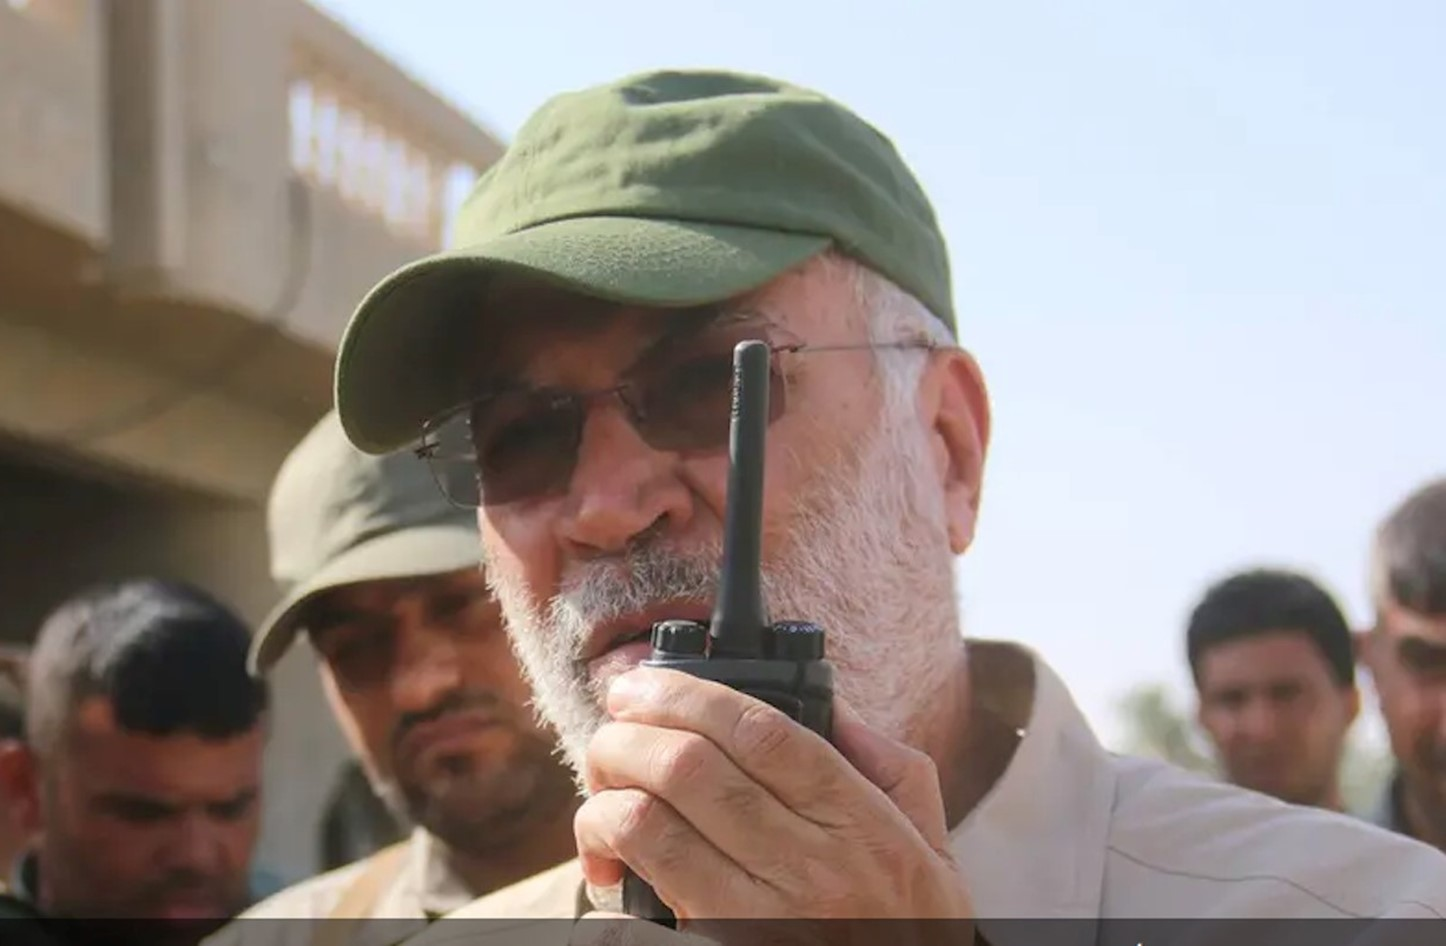 Who is Abu Mahdi, the engineer who was killed with Soleimani? INAF_20200103091004076.jpg?404=d&h=946&w=1446&scale=both&mode=crop&c.focus=faces&c.finalmode=crop&f.threshold=2,4&f